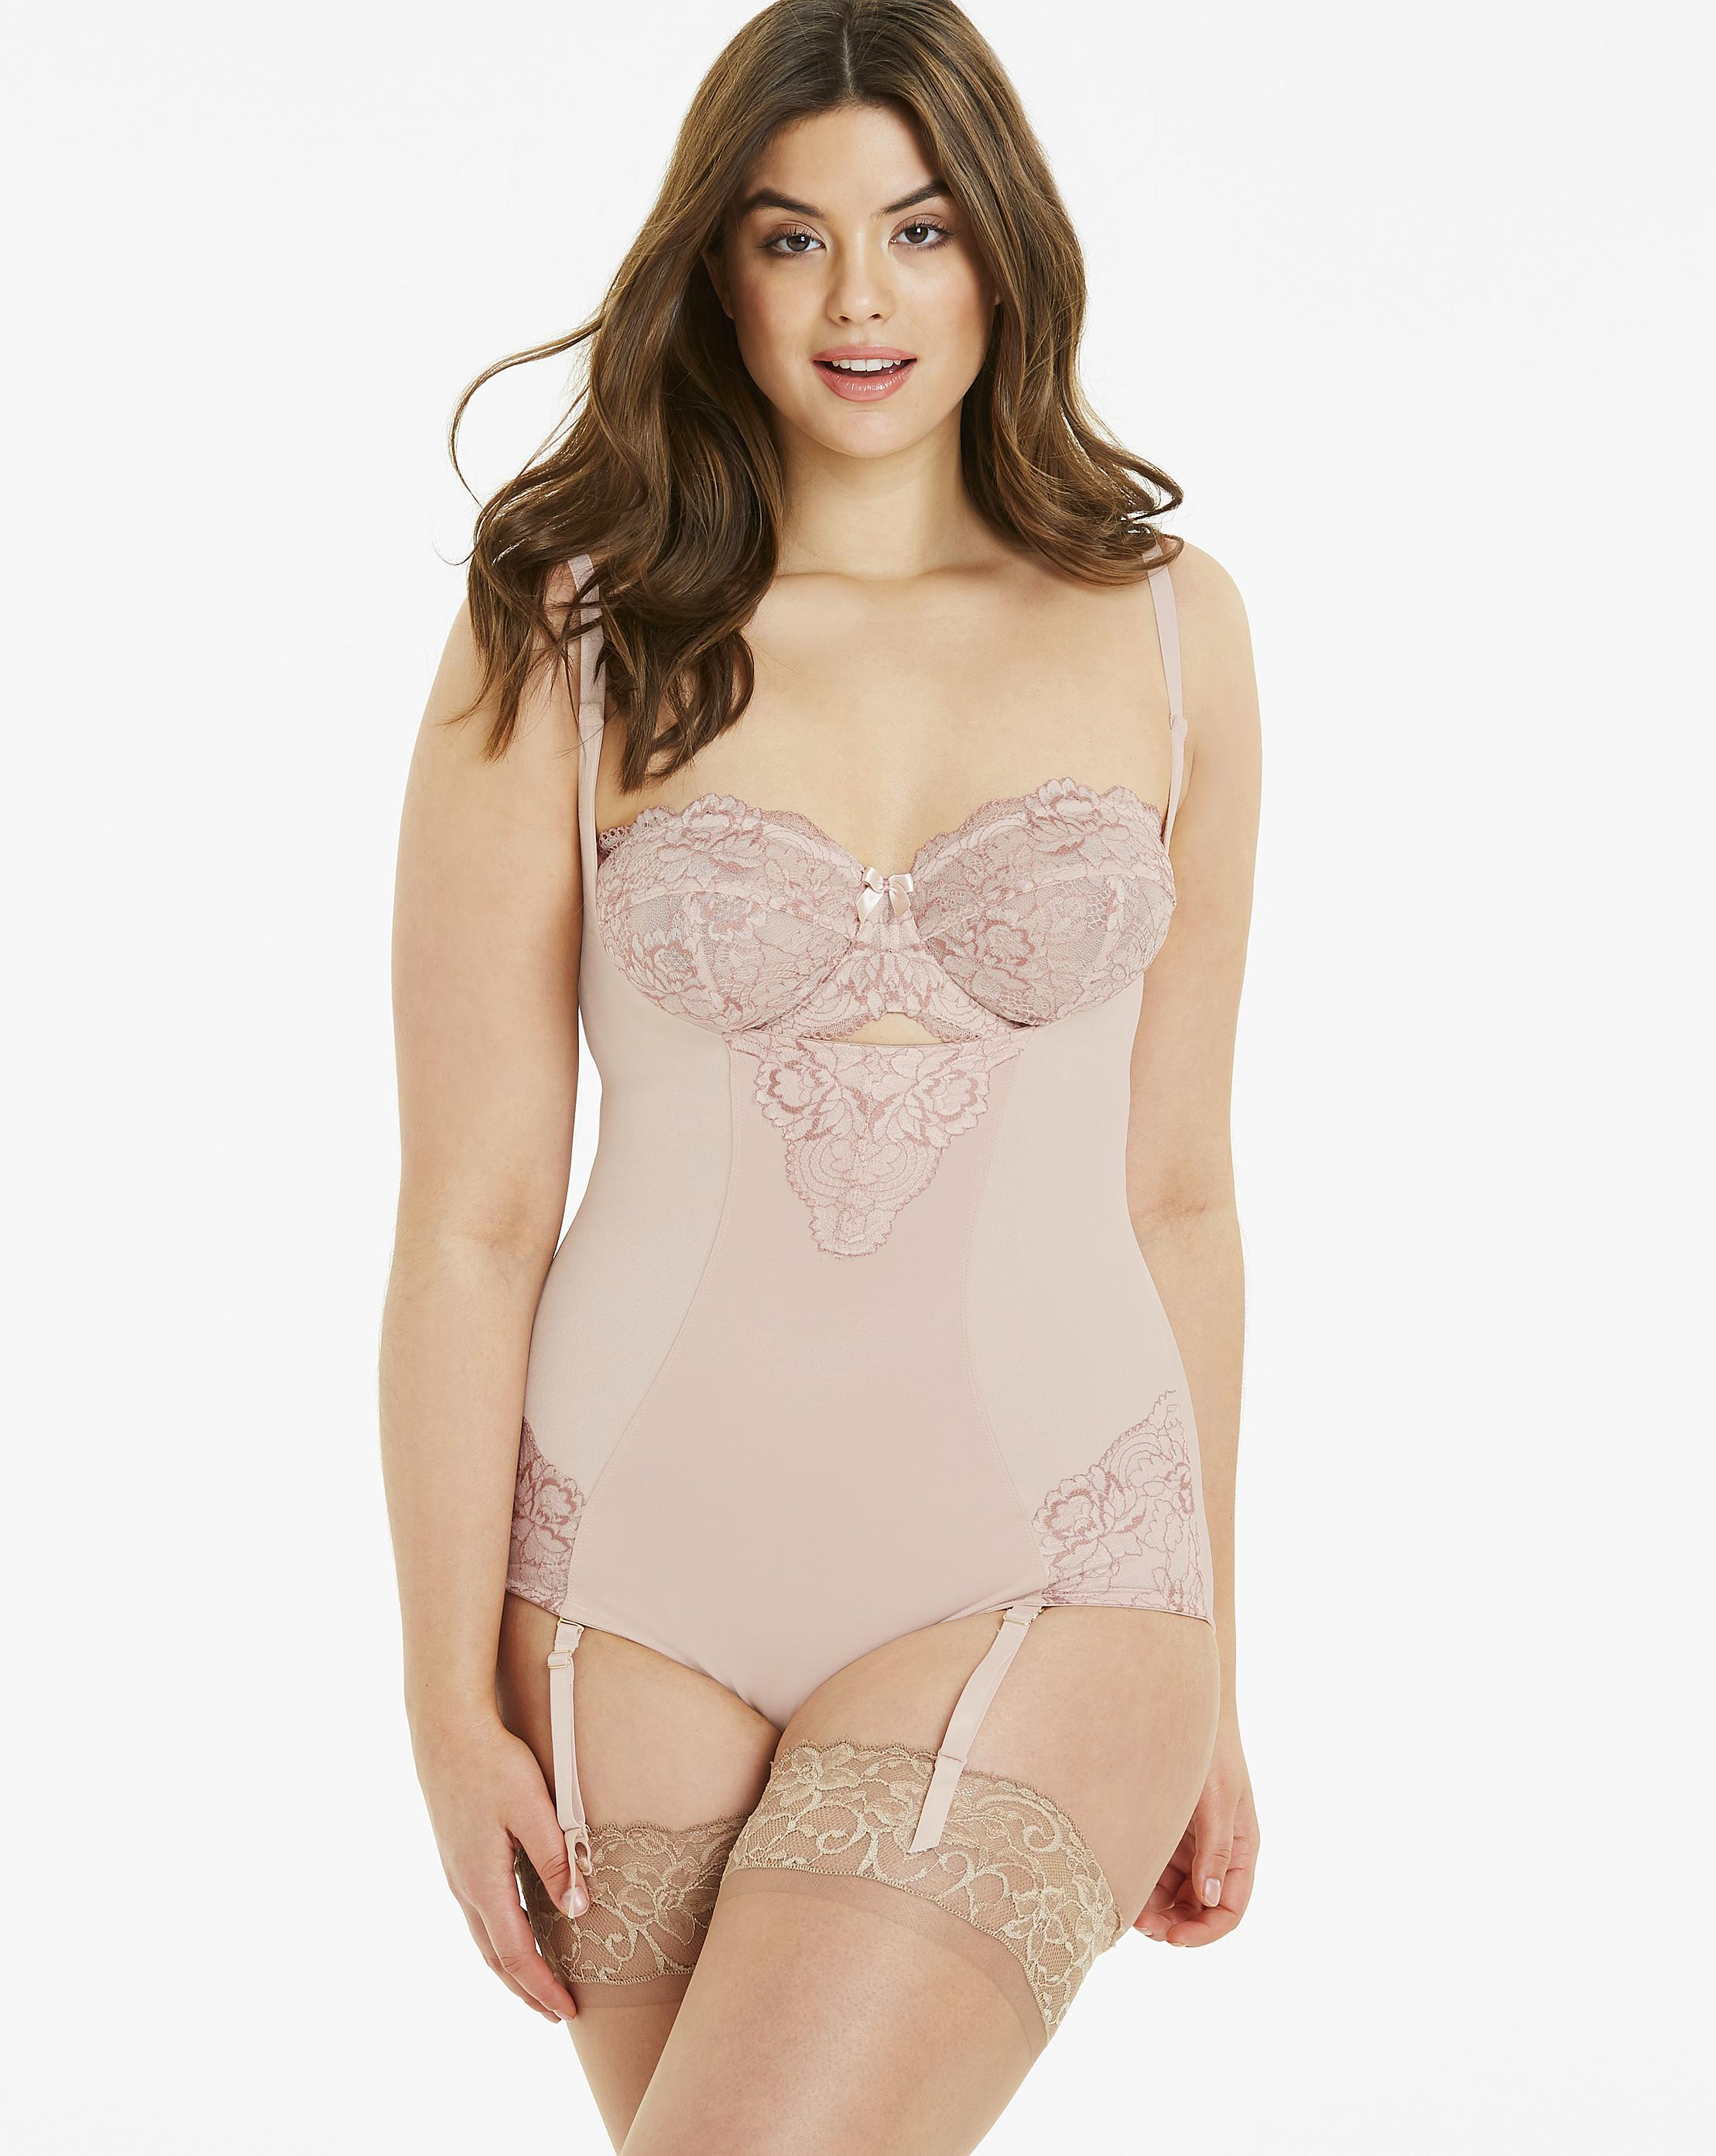 fdeee4a270 Lyst - Simply Be Magisculpt Ella Lace Wear Your Own Bra Blush Firm ...